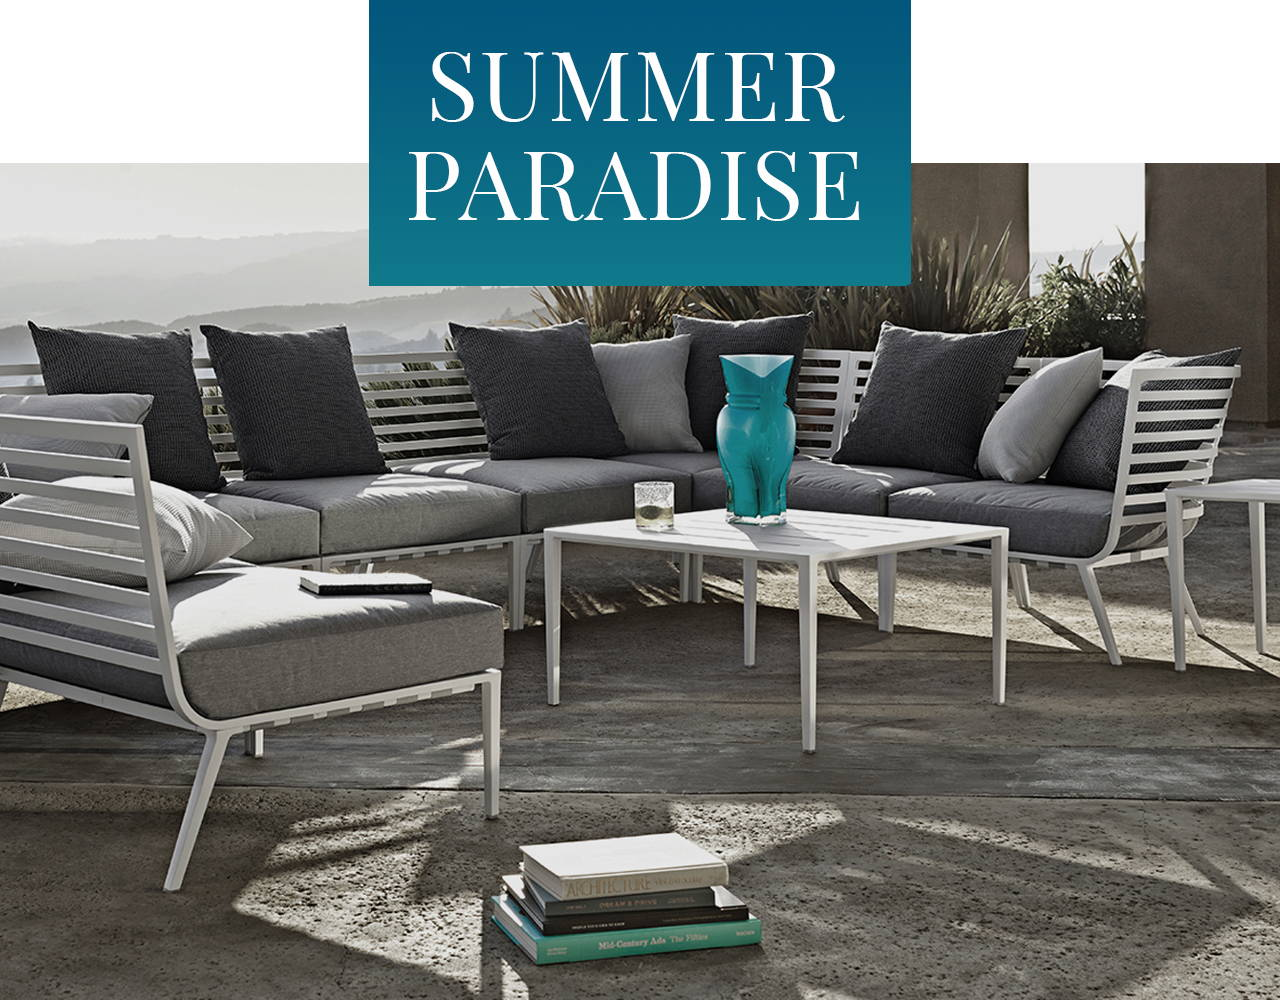 Summer Paradise : Let this be the summer you create your outdoor paradise.